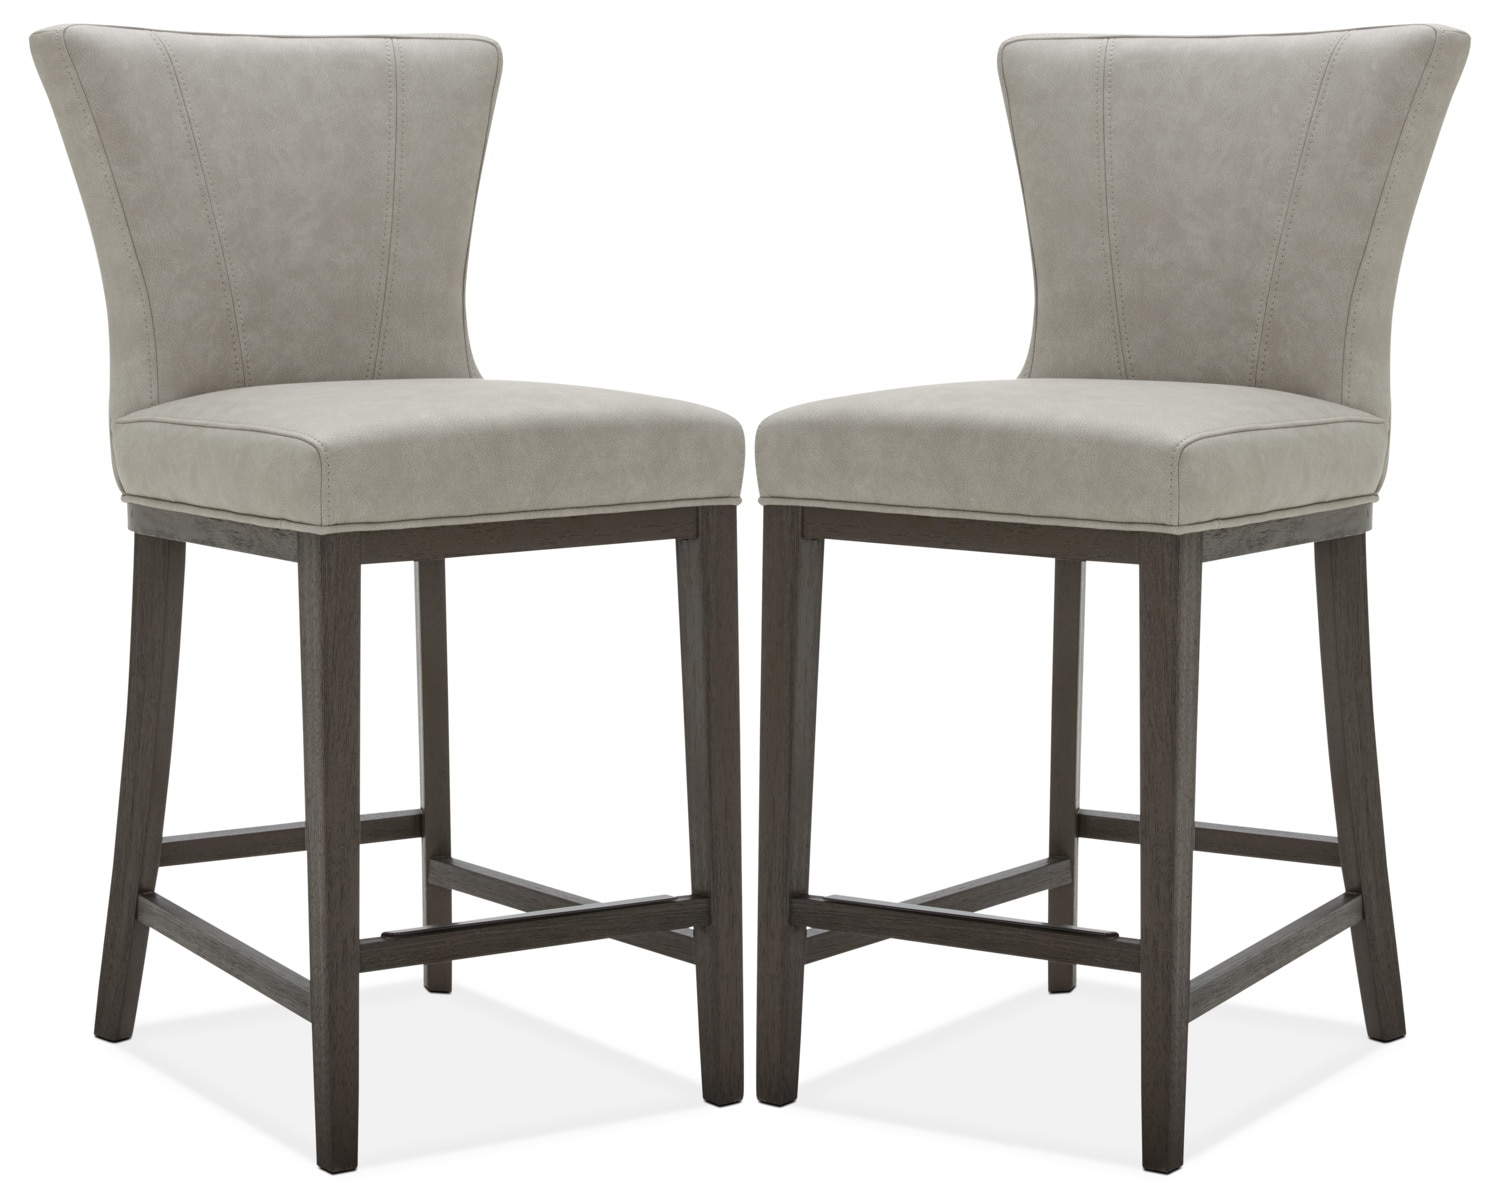 Quinn Counter Height Stool Set Of 2 Taupe The Brick